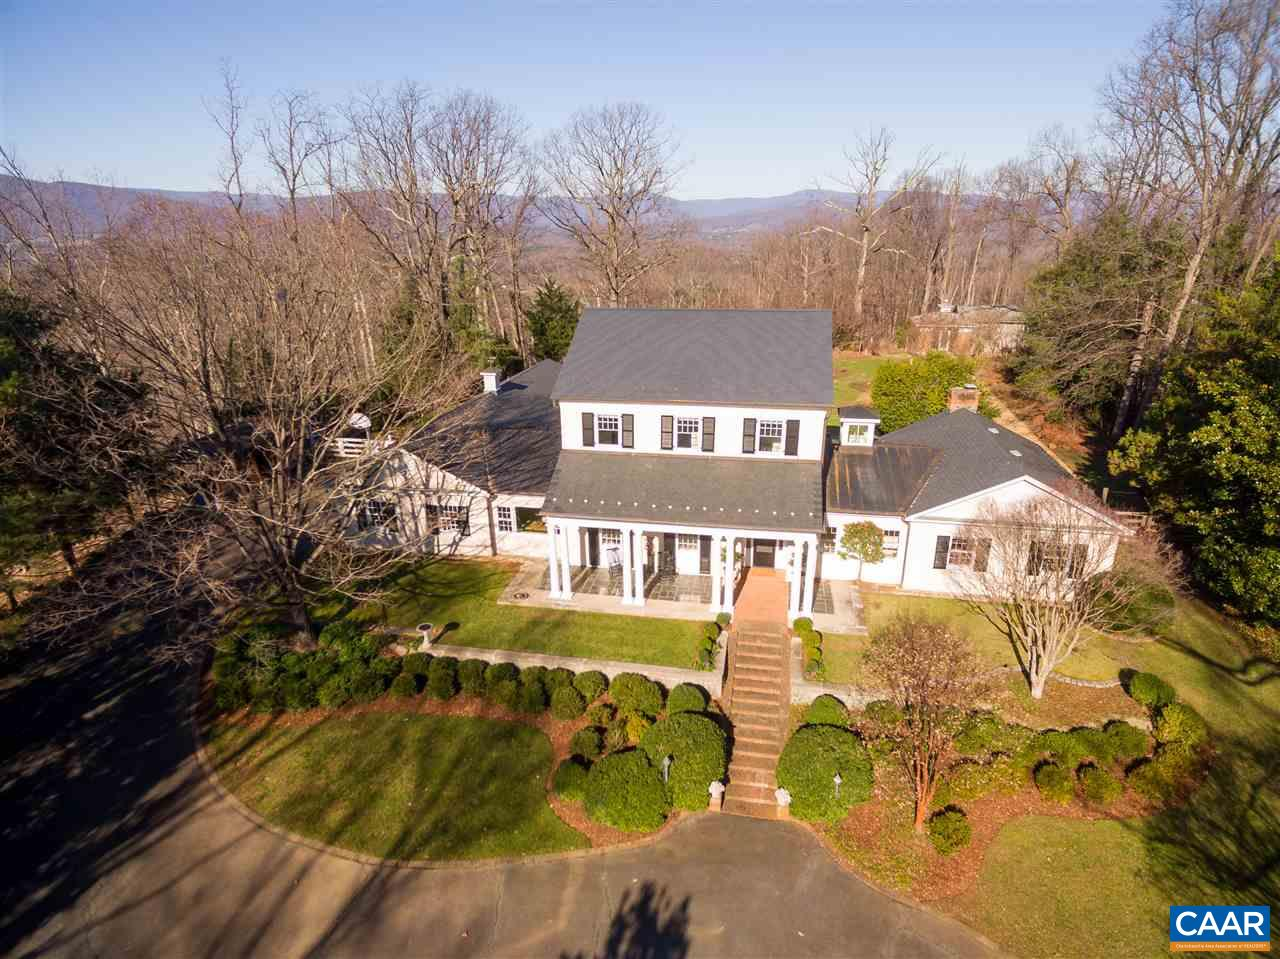 home for sale , MLS #538057, 1250 Turner Mountain Rd